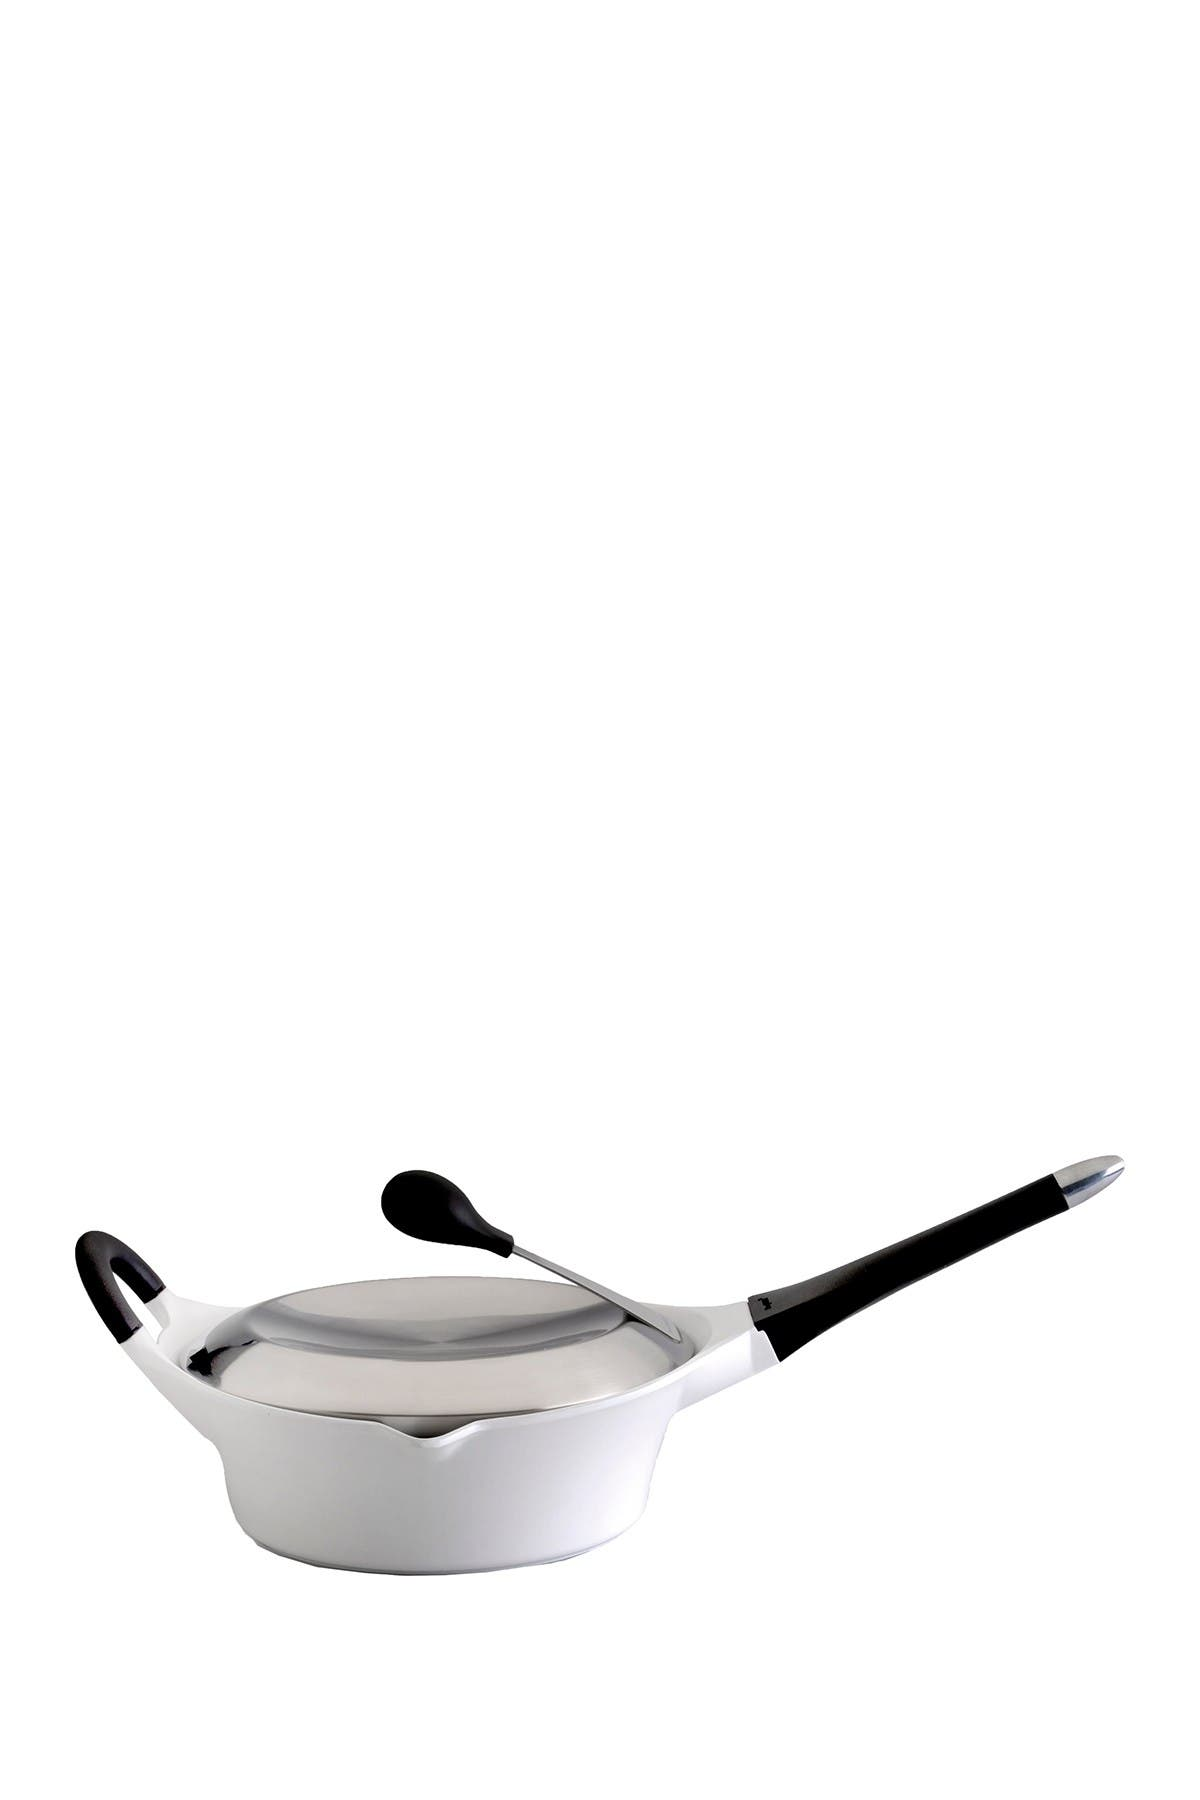 Image of BergHOFF 3.2qt. White Covered Deep Skillet